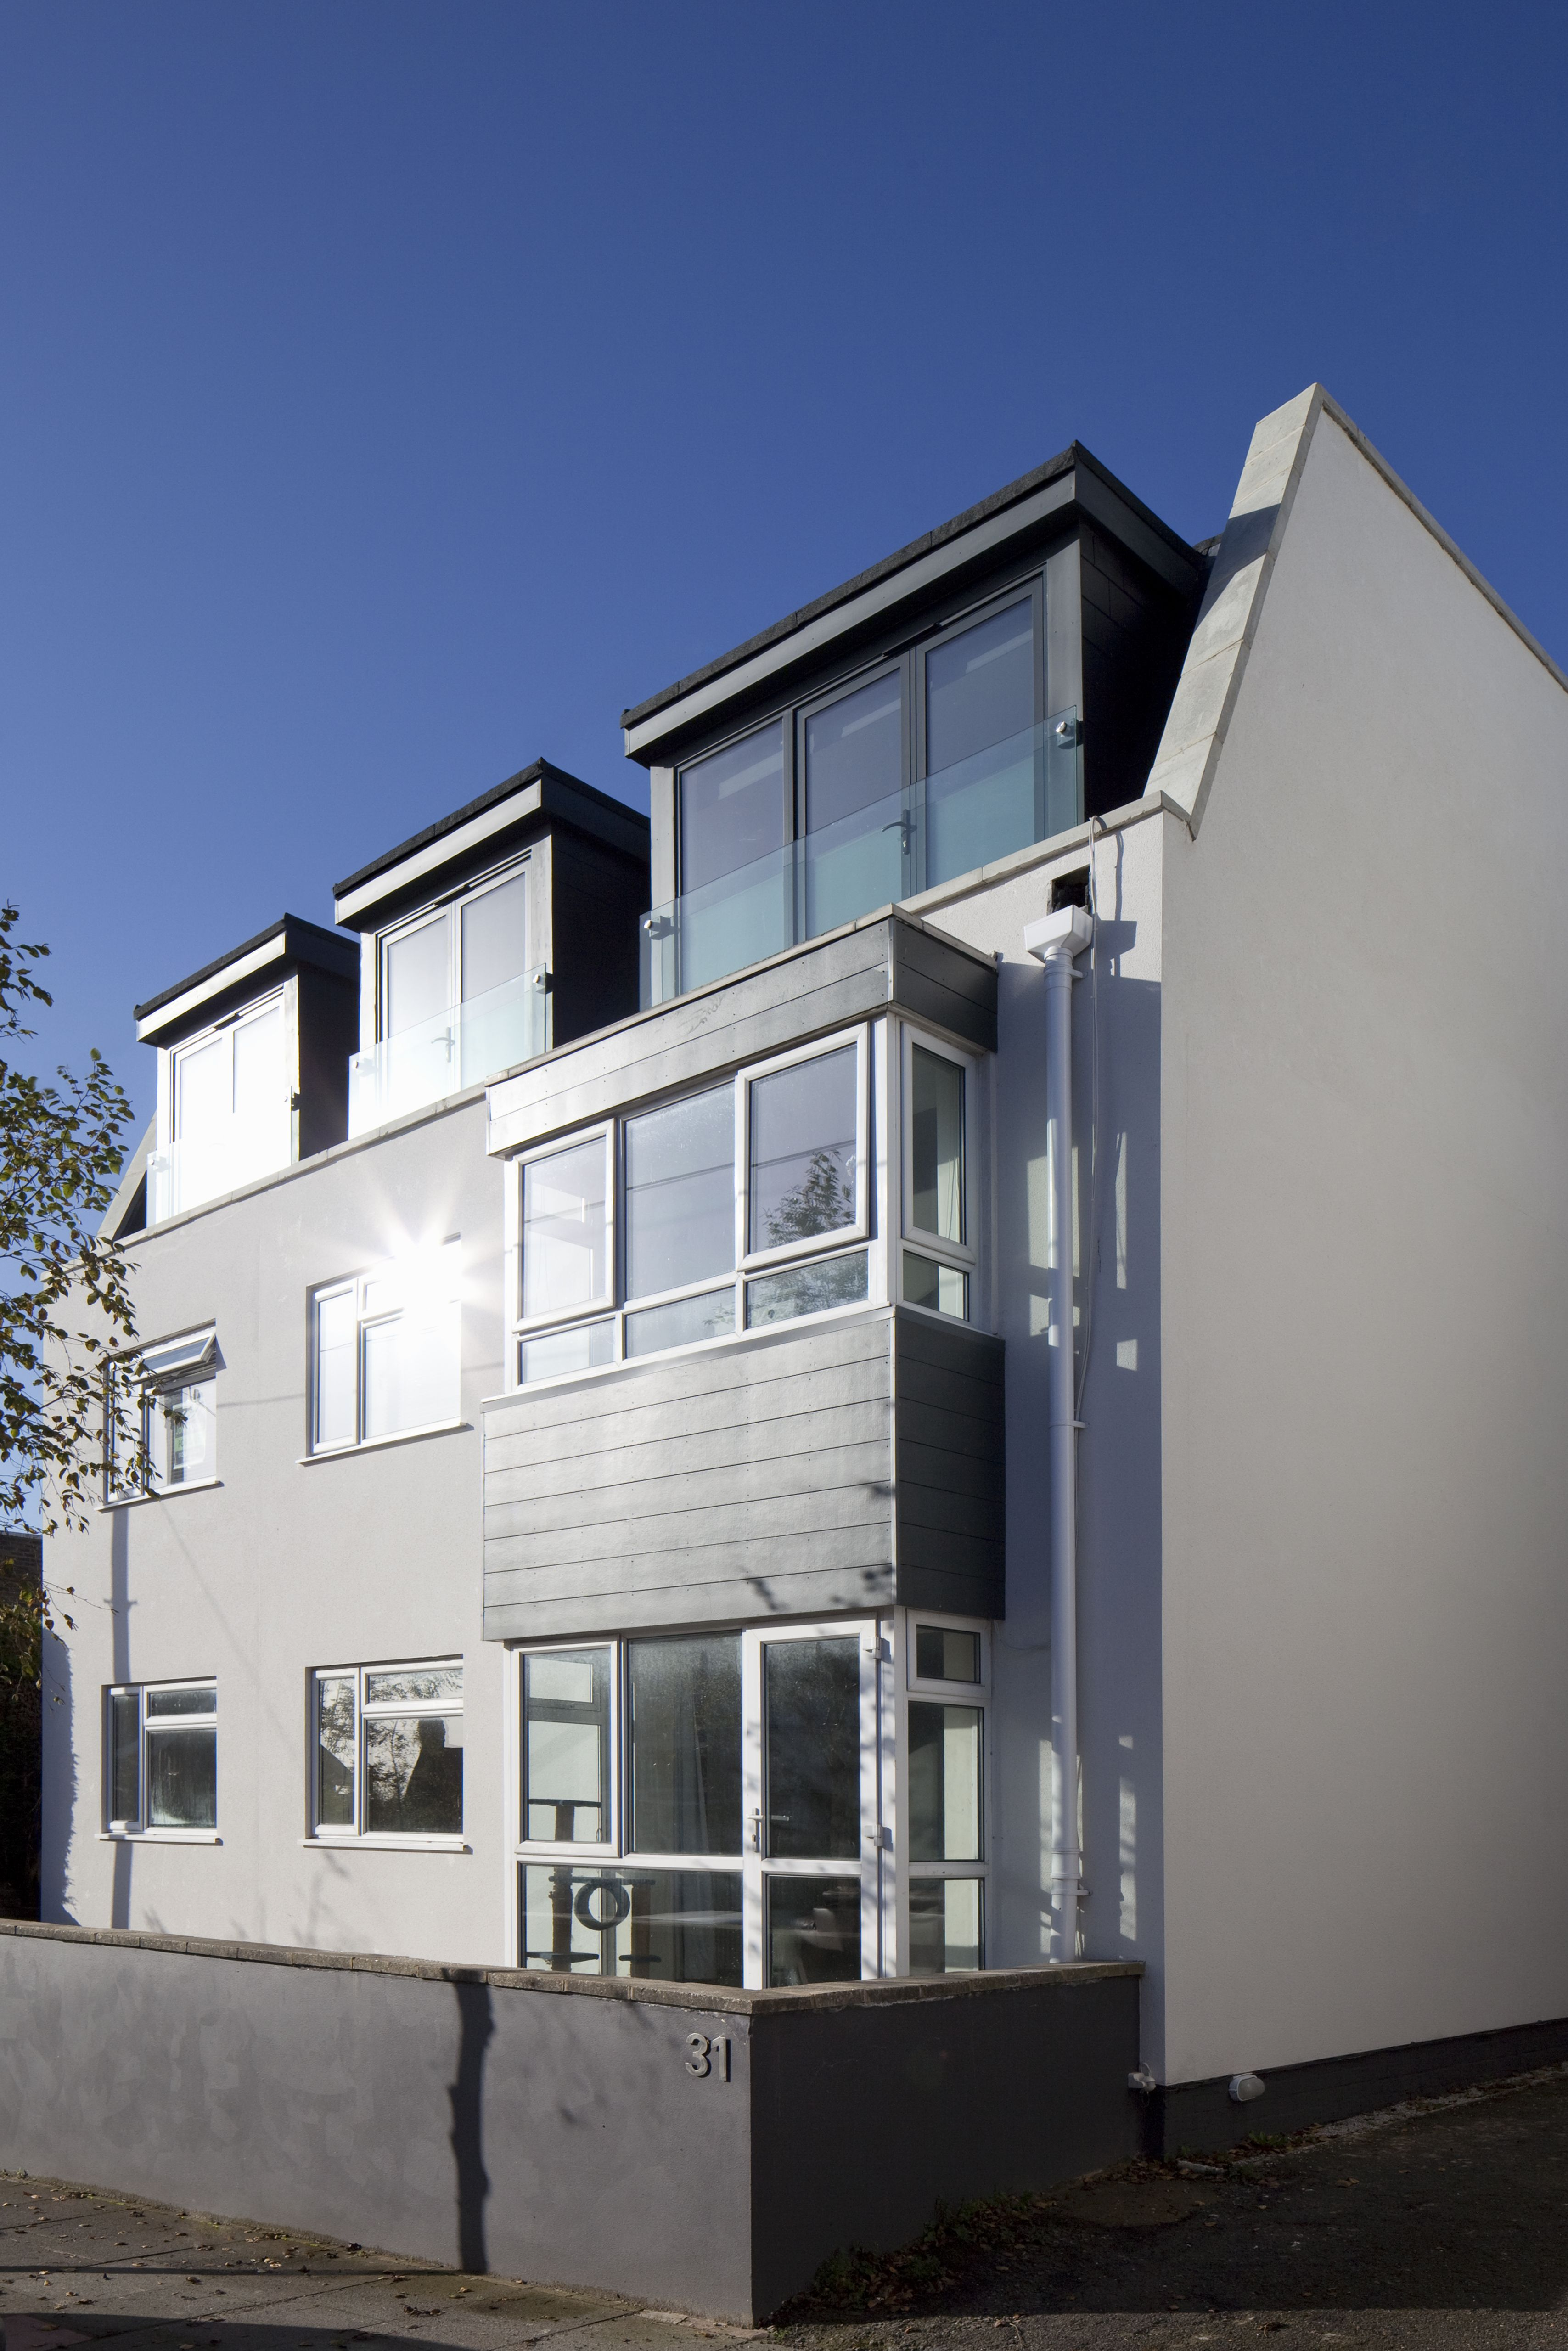 Modern New Build Apartments Flats With Residential Scale